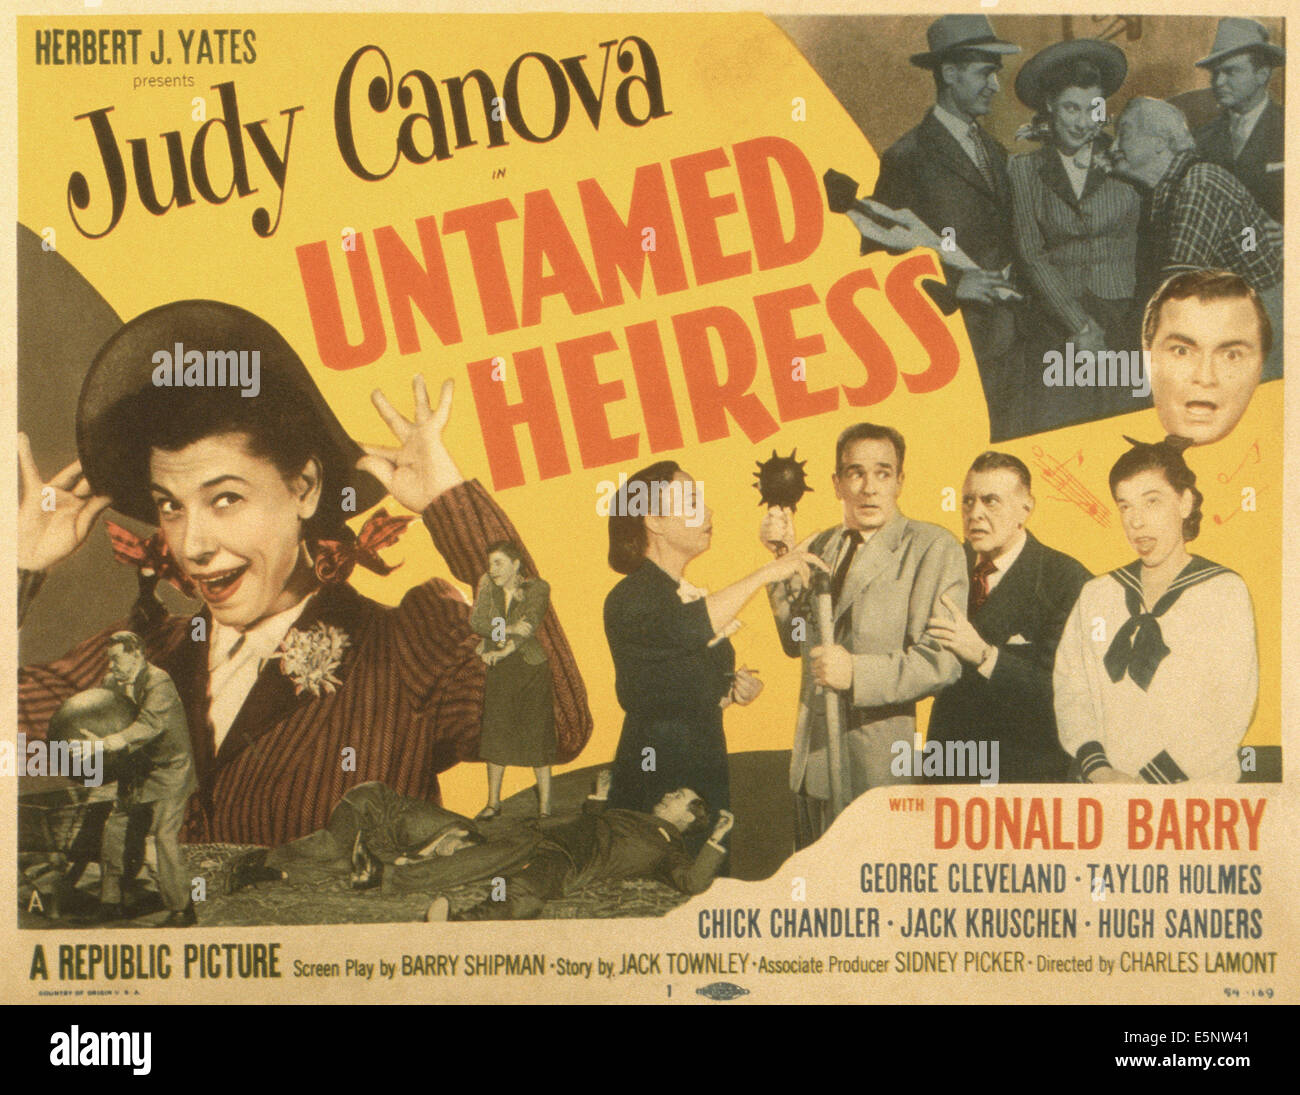 Judy Canova High Resolution Stock Photography And Images Alamy She is an actress and writer, known for soap (1977), throb (1986) and the love boat (1977). https www alamy com stock photo untamed heiress us poster judy canova left center from left ellen 72395457 html